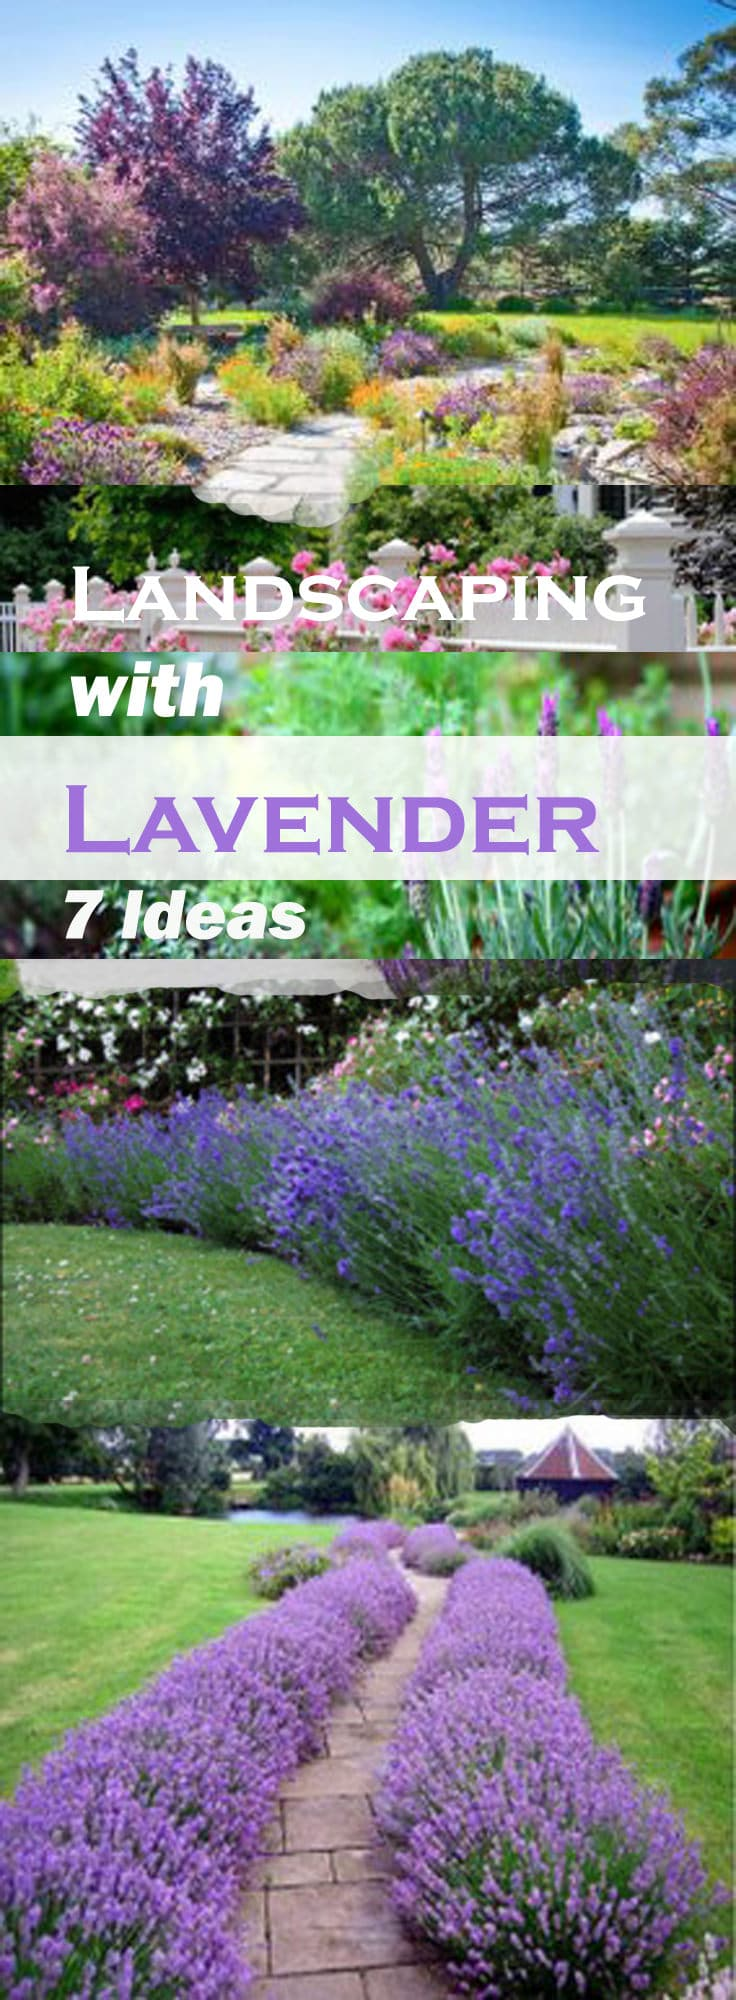 Landscaping with Lavender | 7 Garden Design Ideas on Backyard Landscaping Ideas id=47630